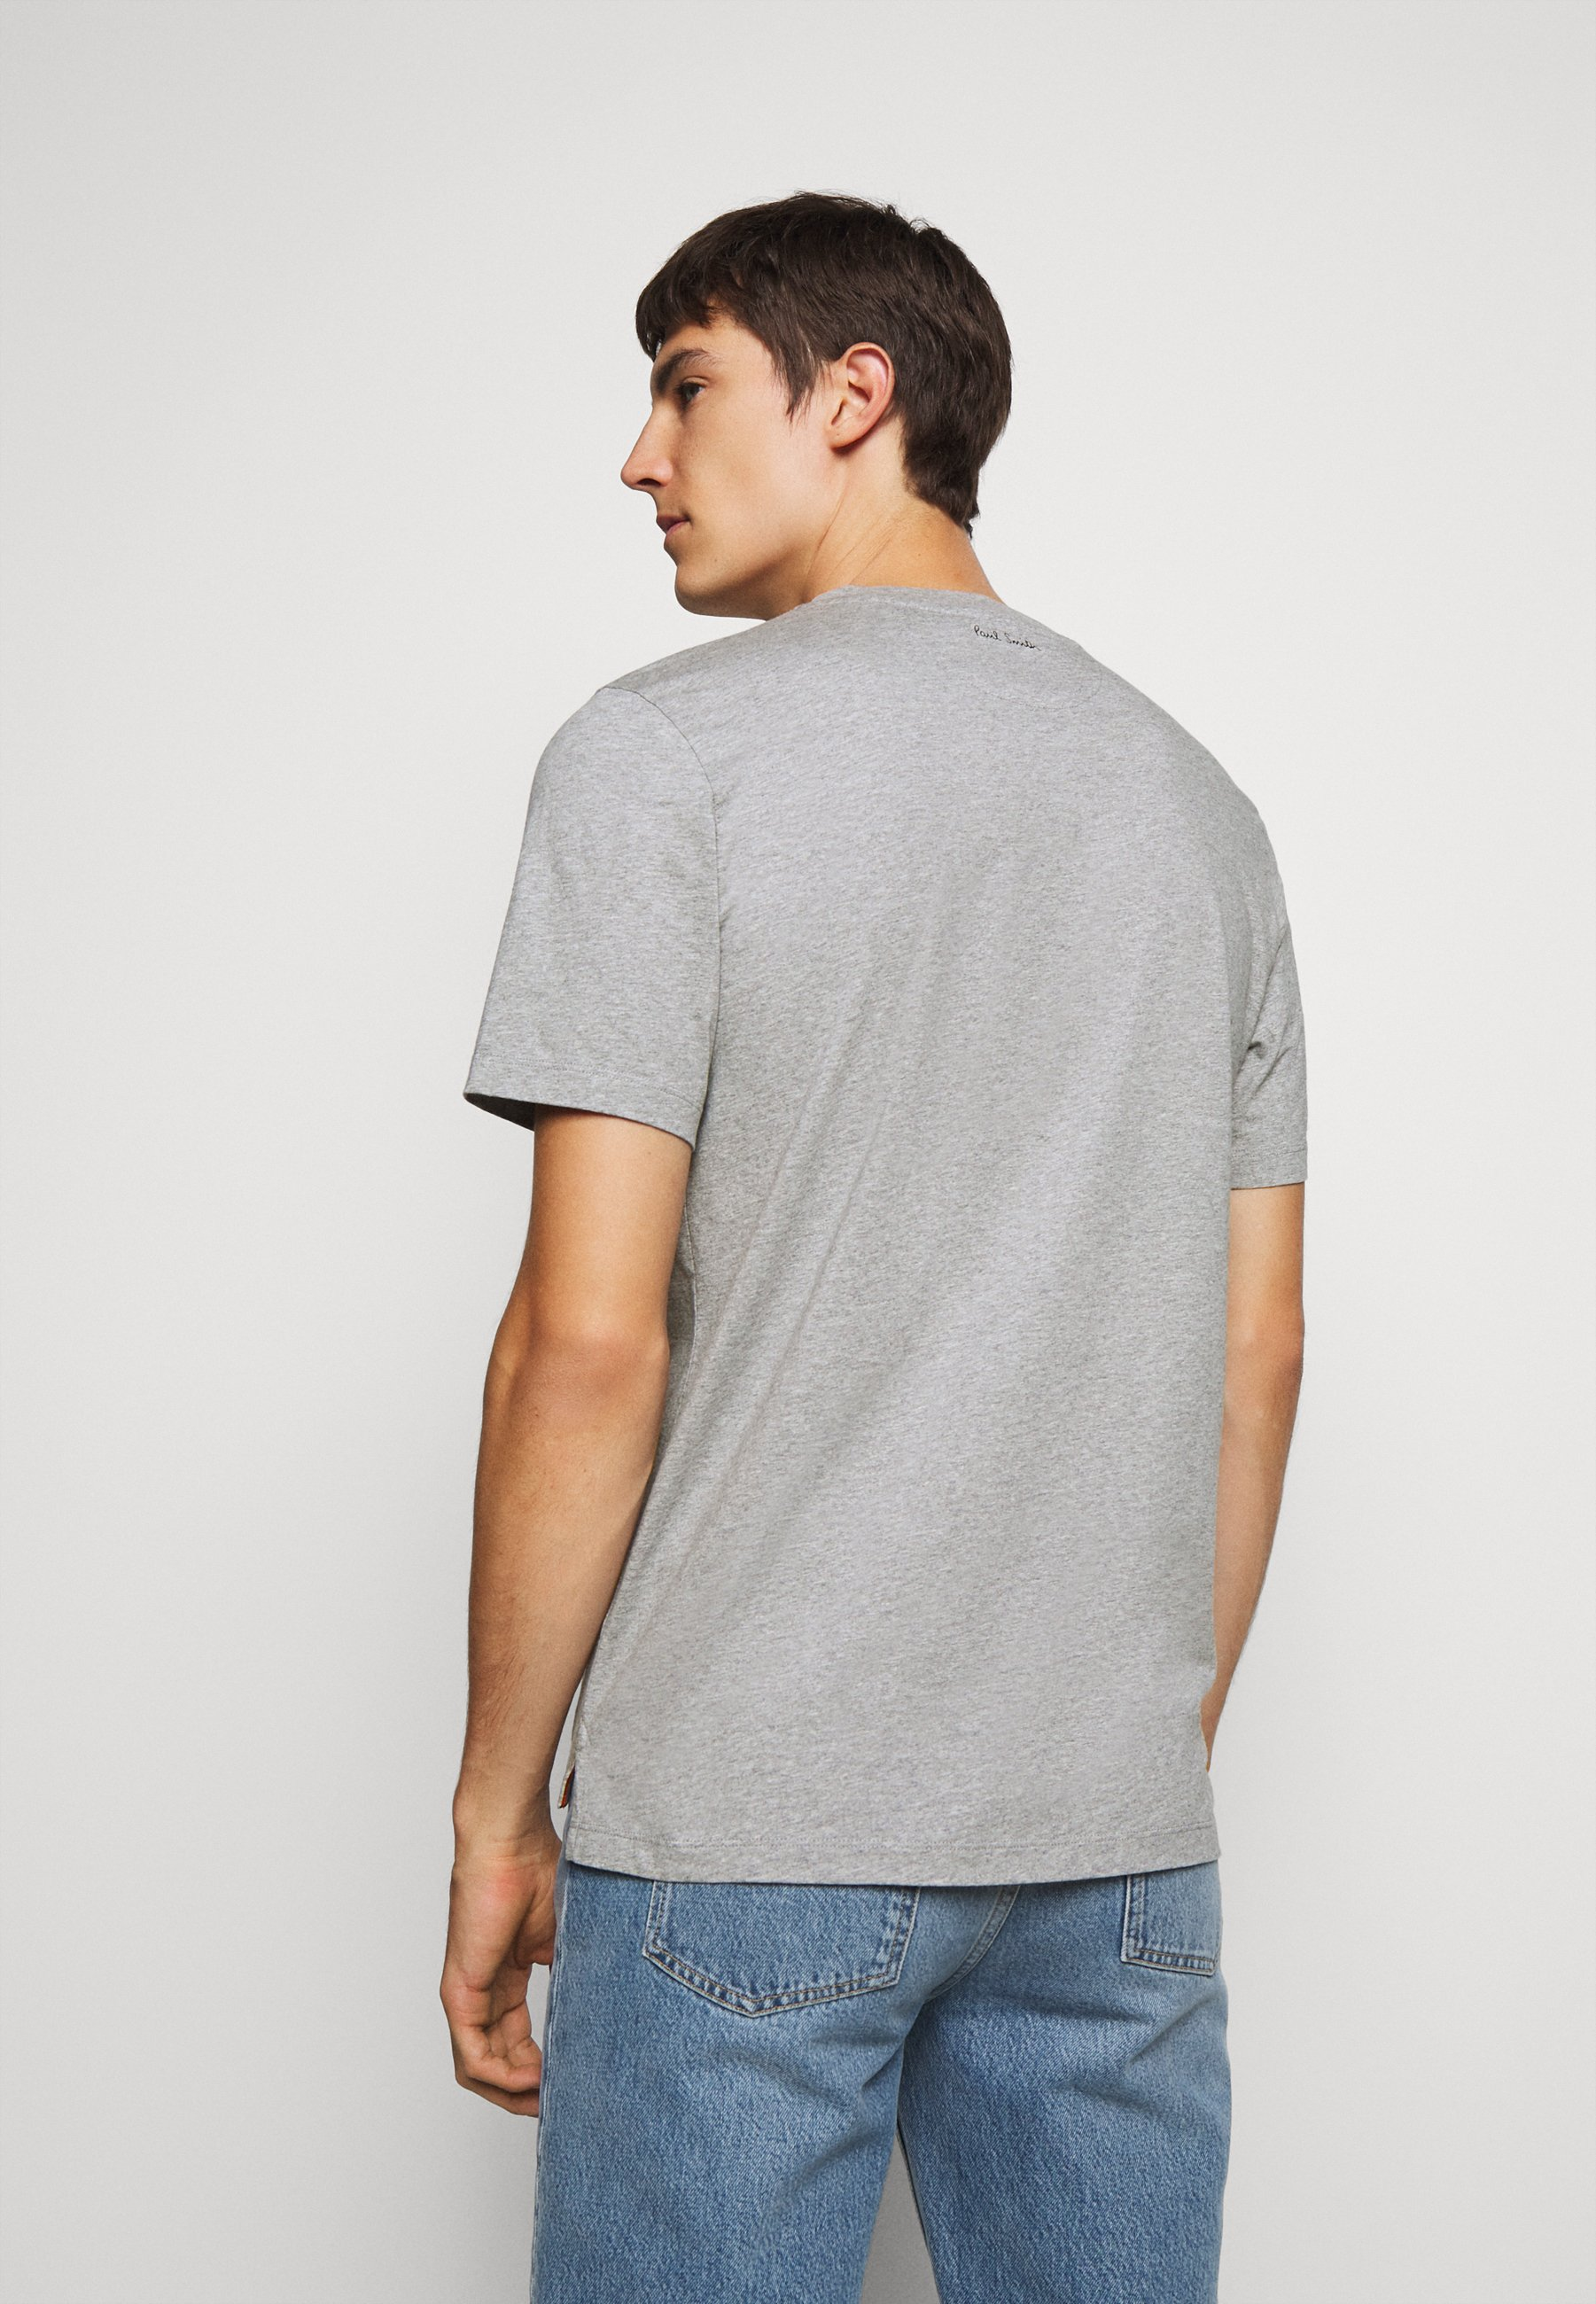 Paul Smith Print T-shirt - grey Byk9y